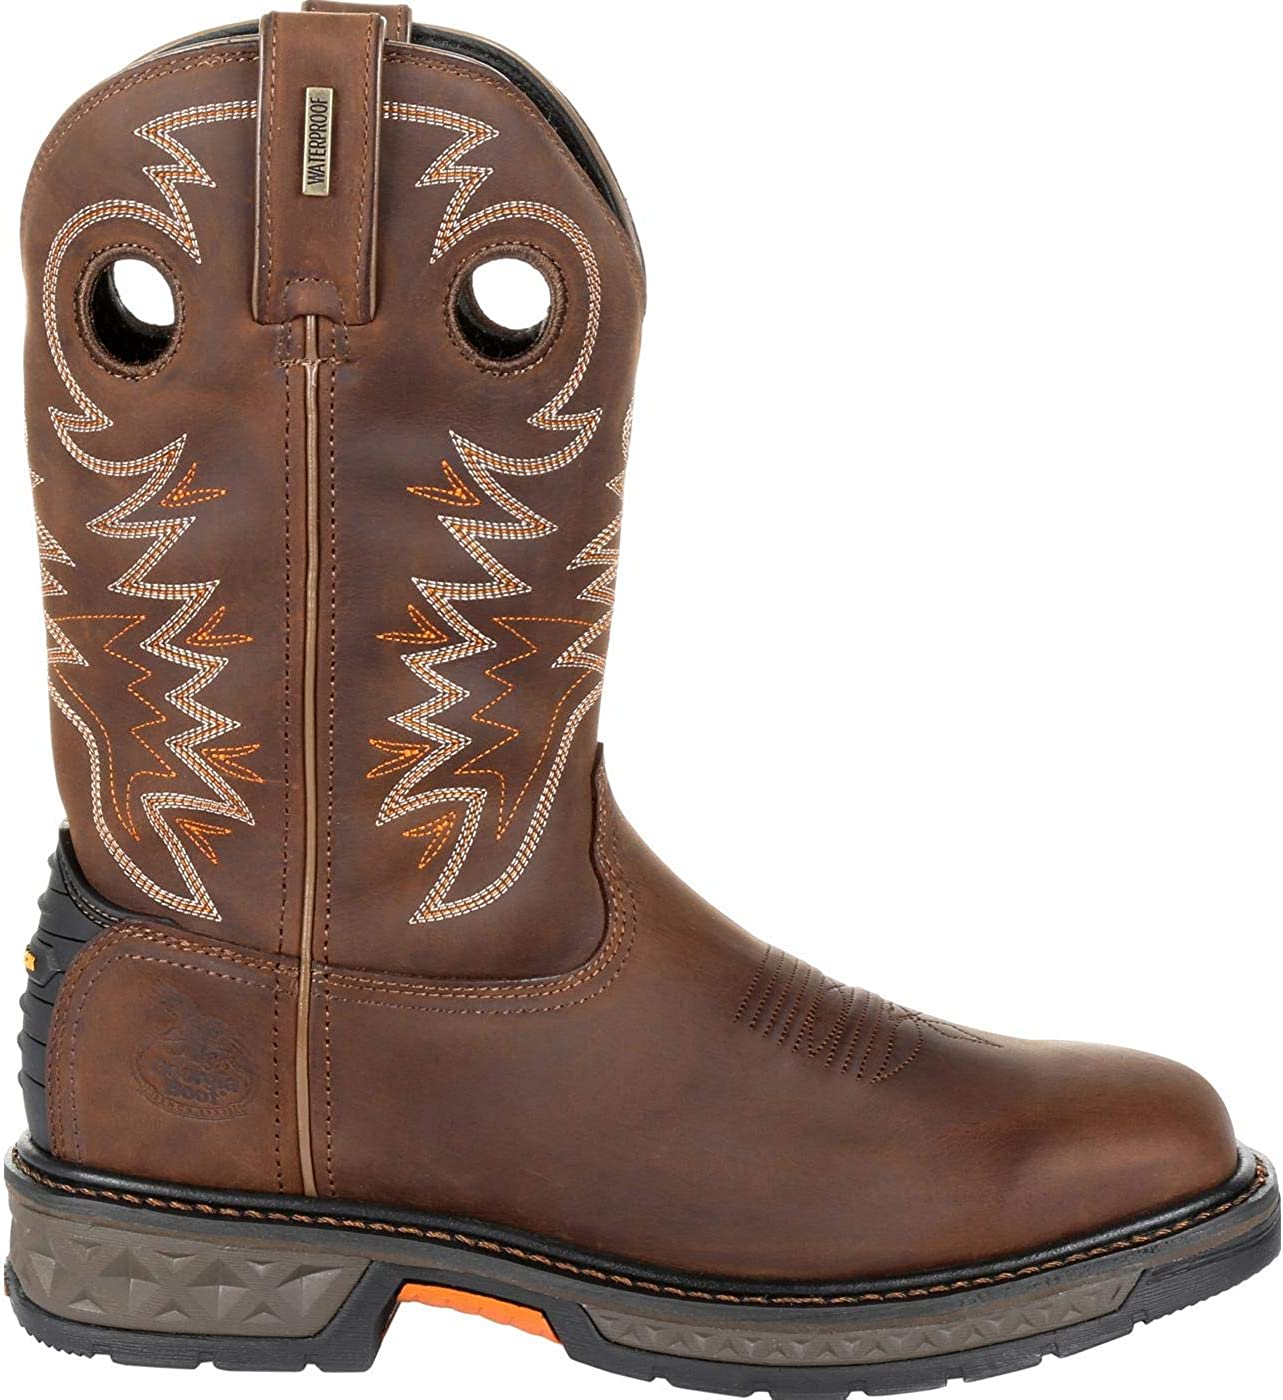 B07NZ67LCH Georgia Boot Carbo-Tec LT Pull-On Work Boot Brown 71PXWxuinCL.UL1400_